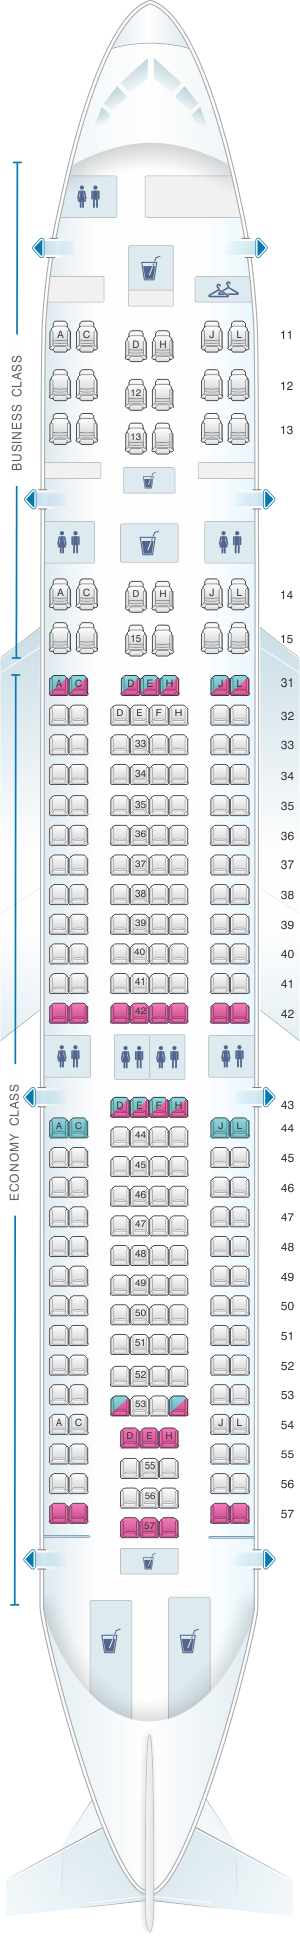 Seat map for Air China Airbus A330 200 (237PAX)